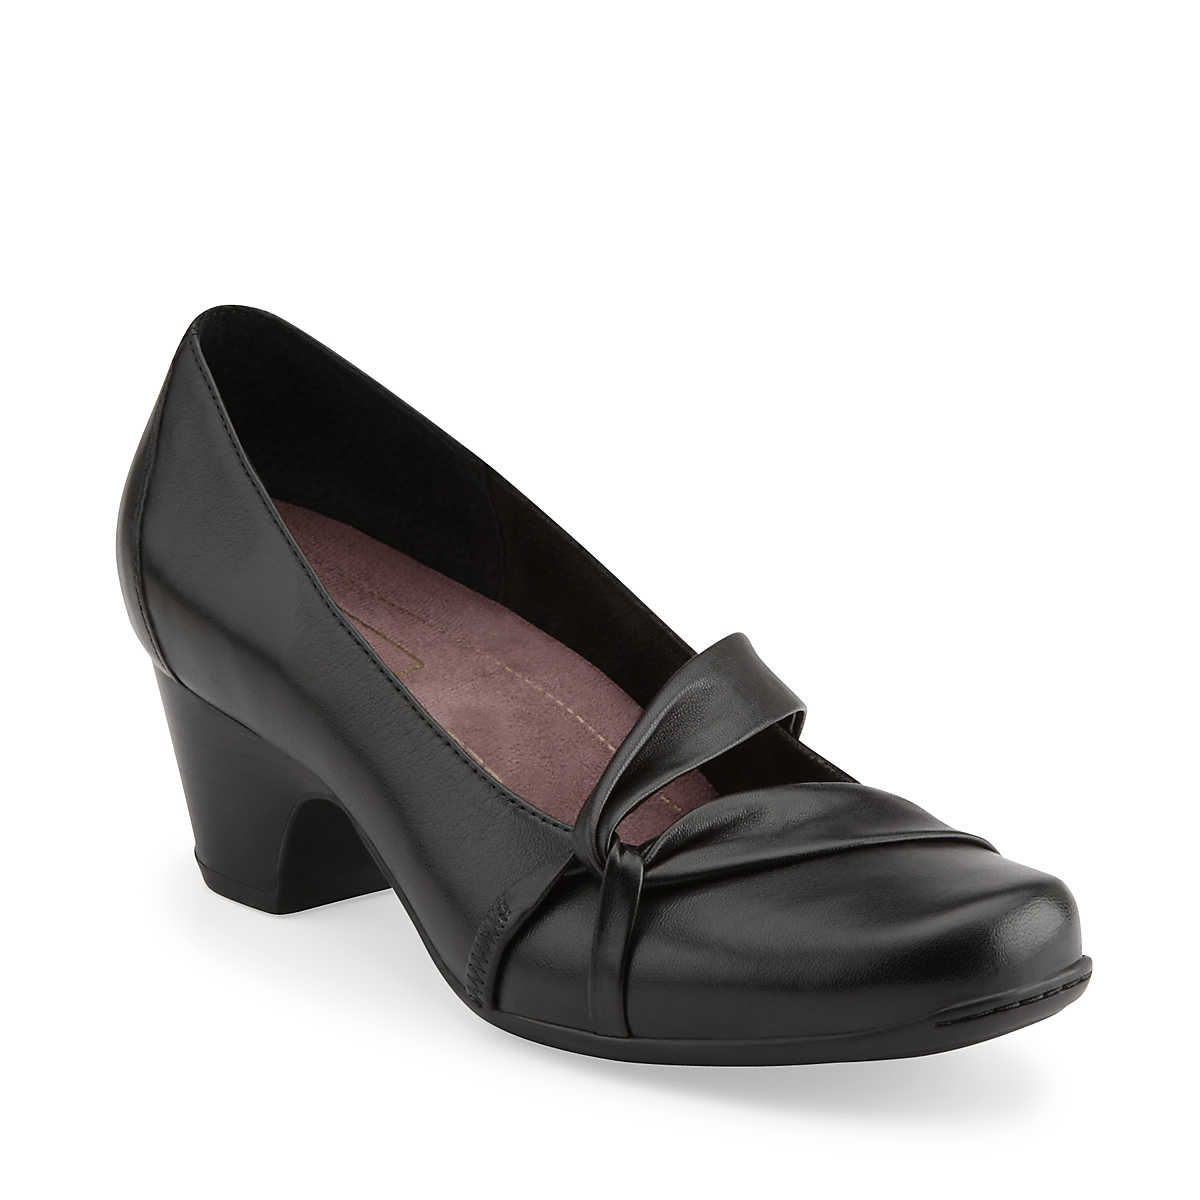 clarks Sugar Plum in Black Leather - Womens Shoes from Clarks 110.00 2.5  heel